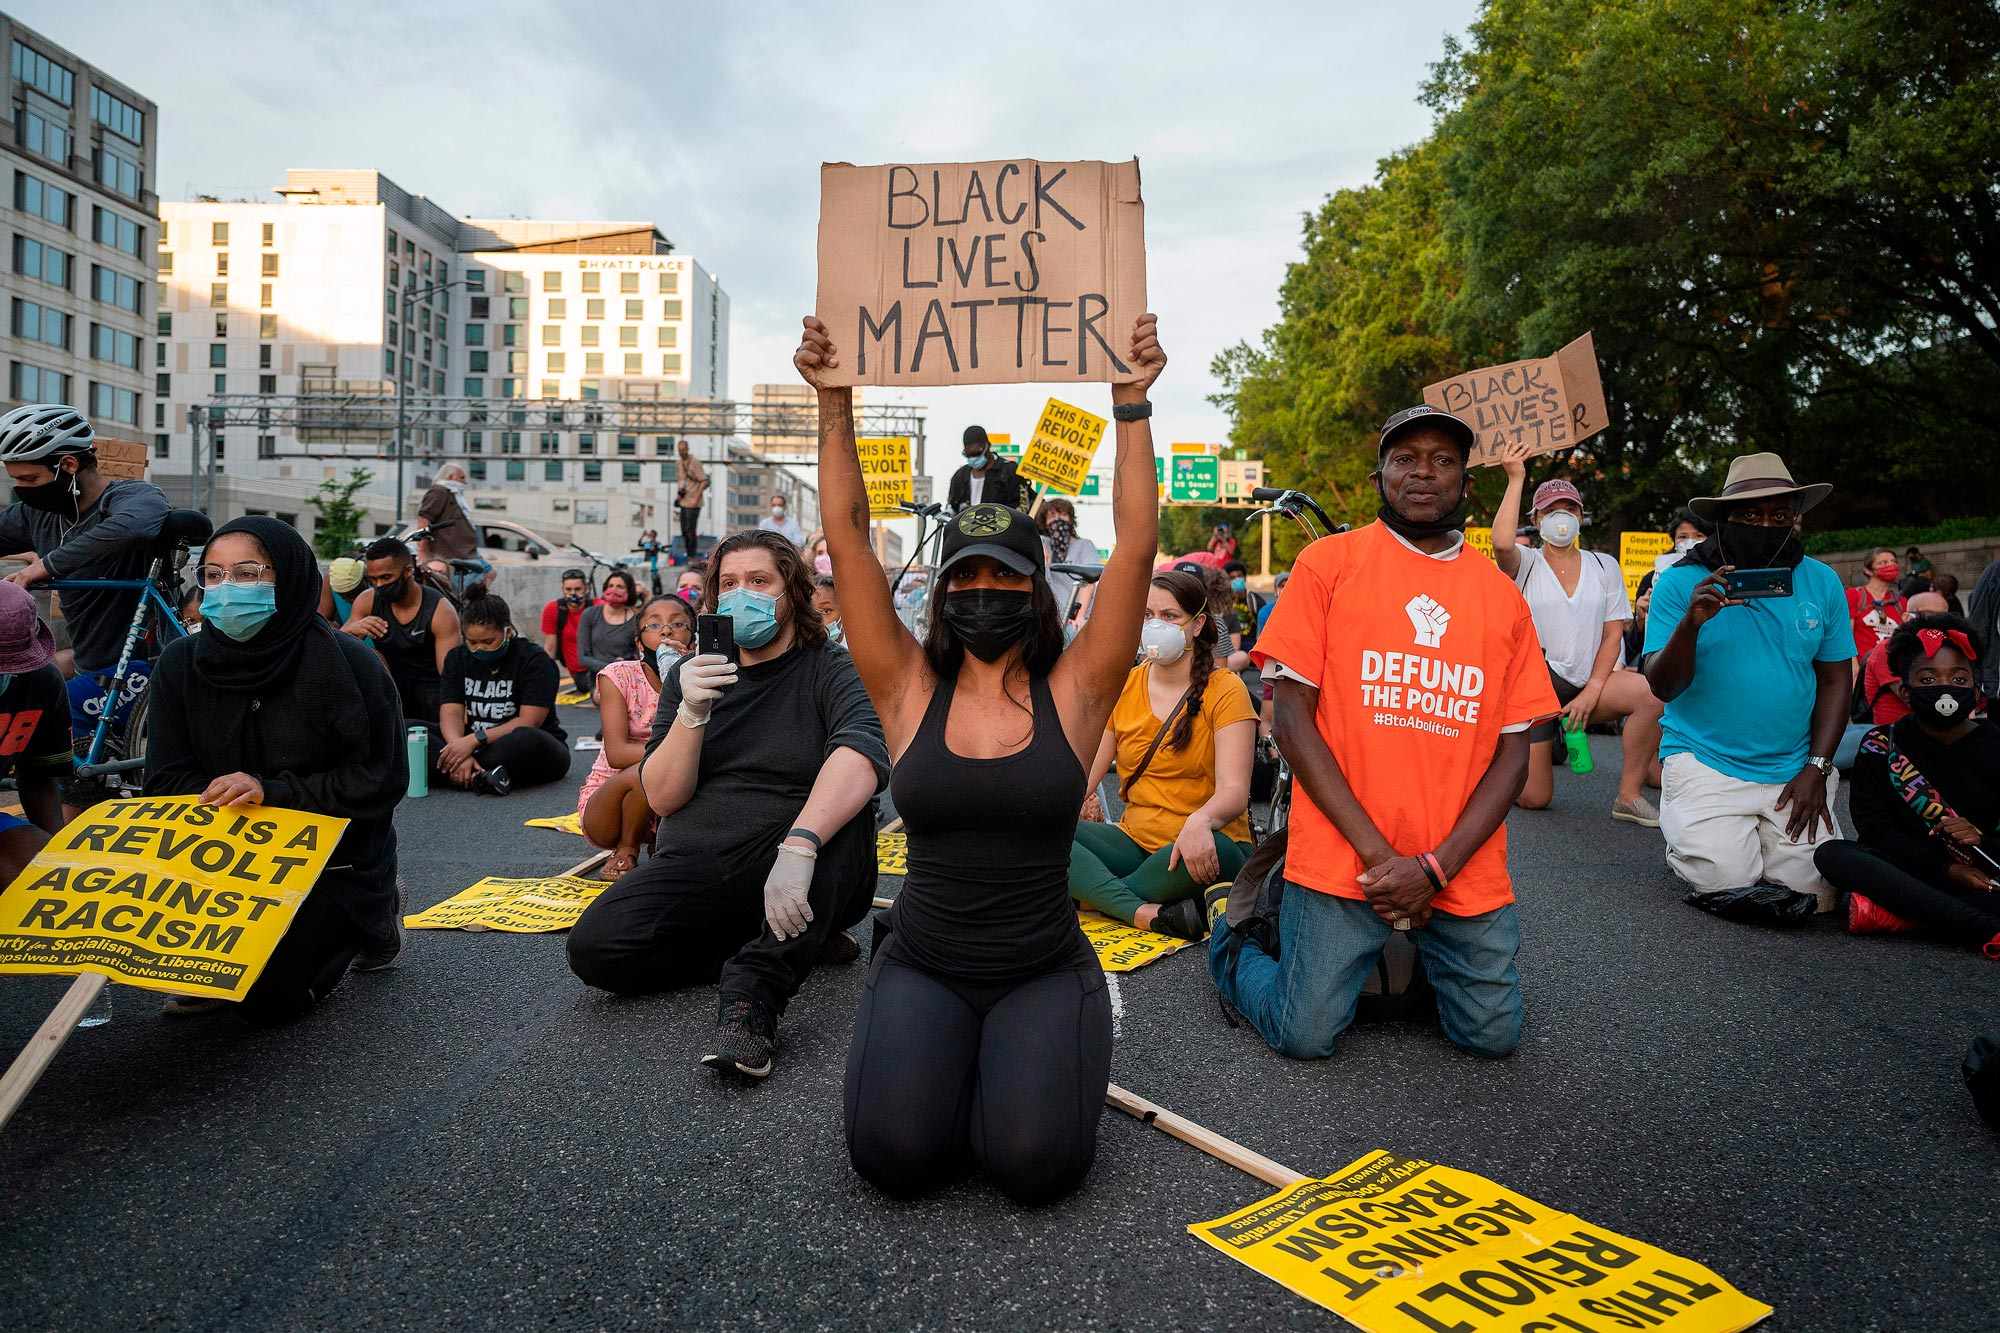 Protesters kneel and hold up signs as they demonstrate the death of George Floyd by blocking traffic on I-395 in Washington on June 15.